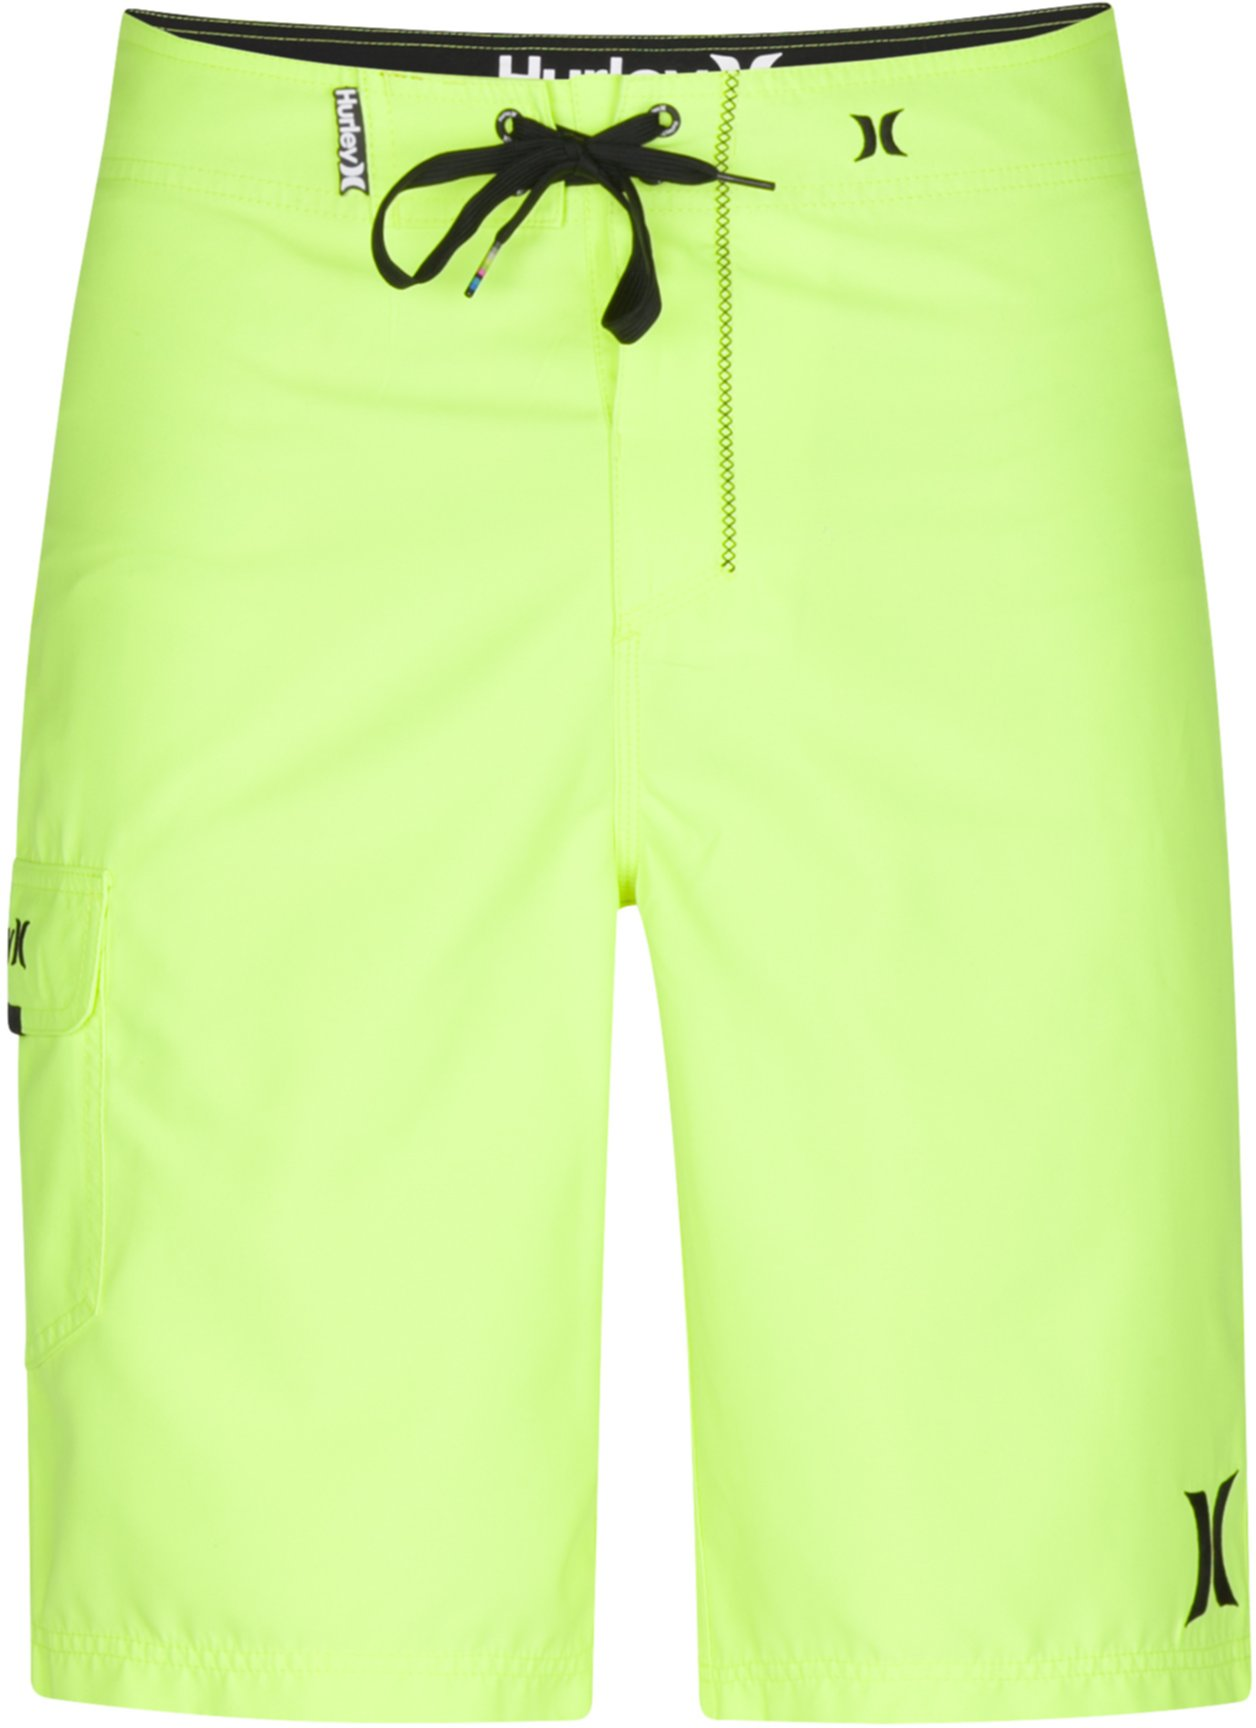 "One & Only Boardshort 22 "" Hurley"